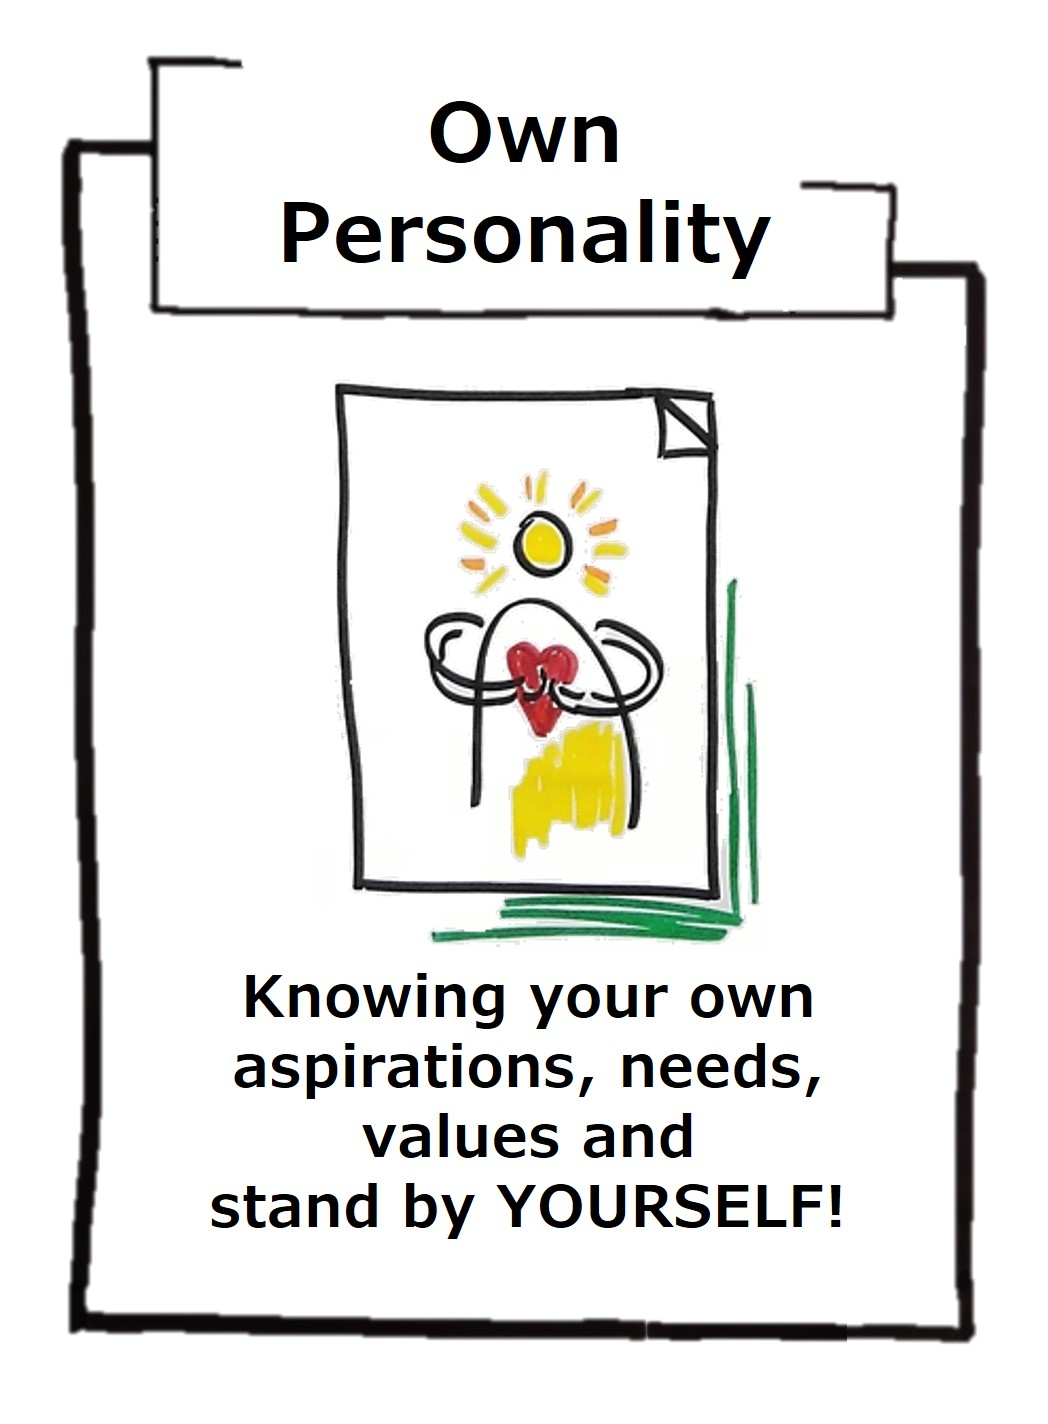 We are born with our own personality, but whether we stand by ourselves only becomes apparent during our lives!